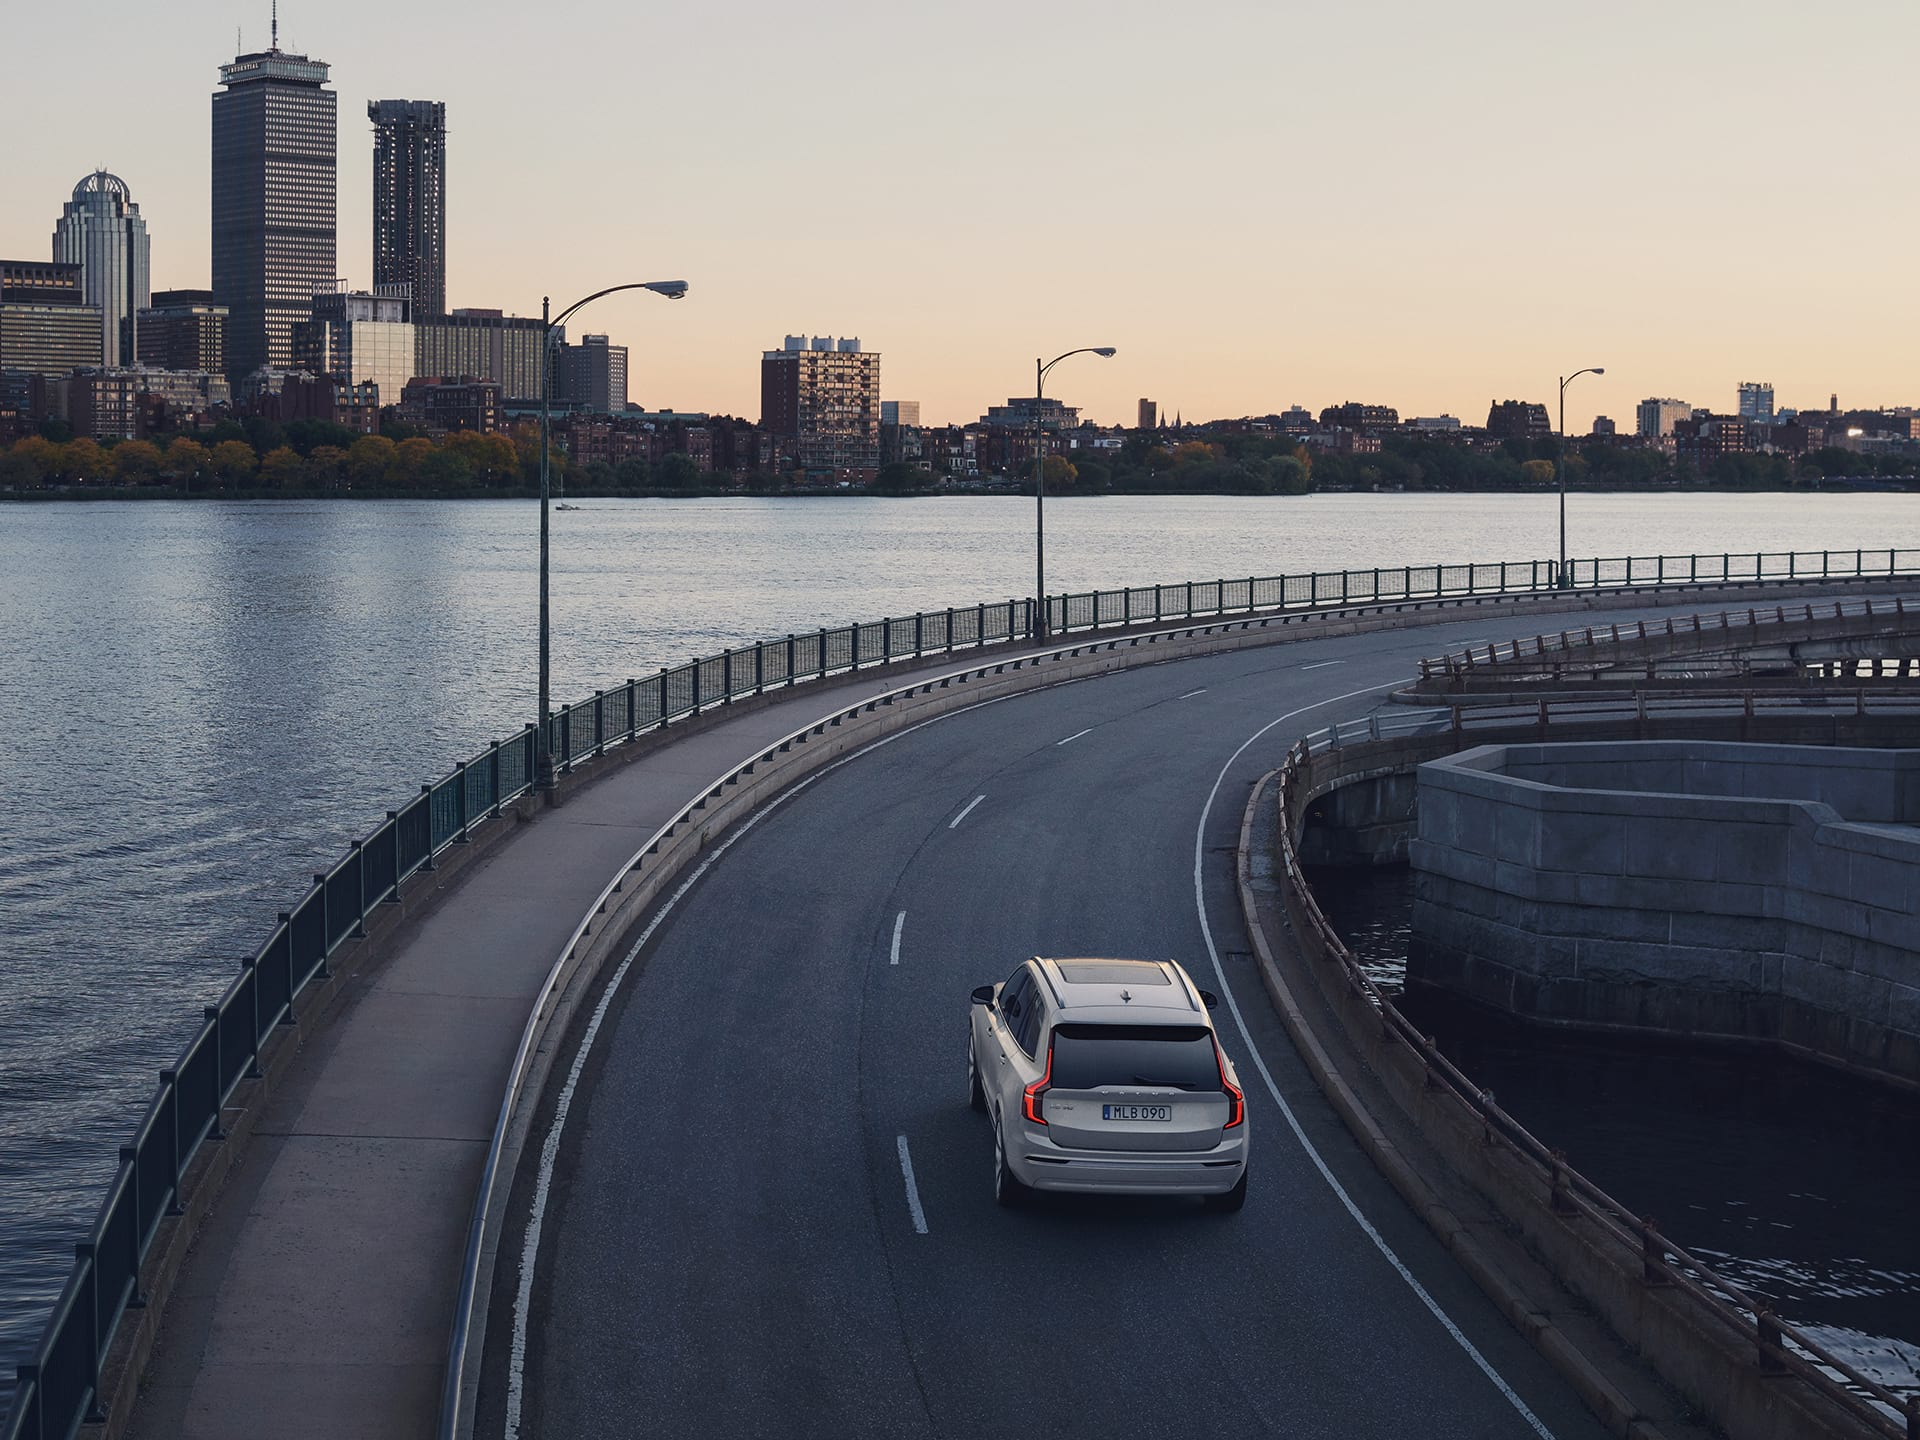 A Volvo XC90 follows a curve along the side of a river.